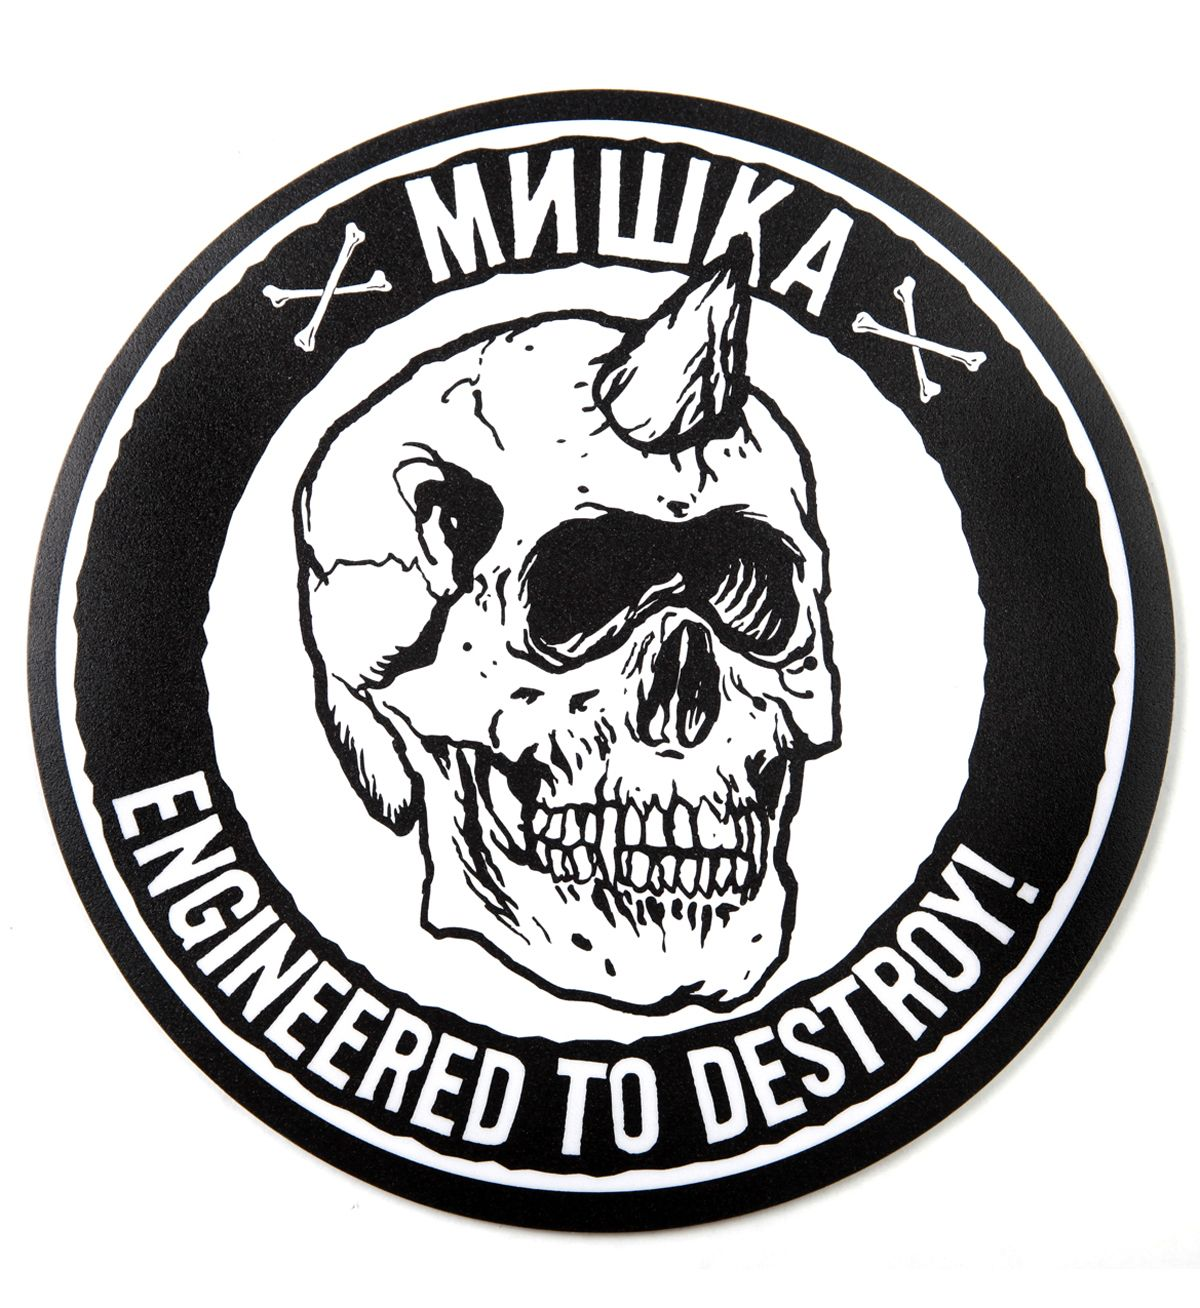 Mishka- They Use This Logo When Things Are A Lot More